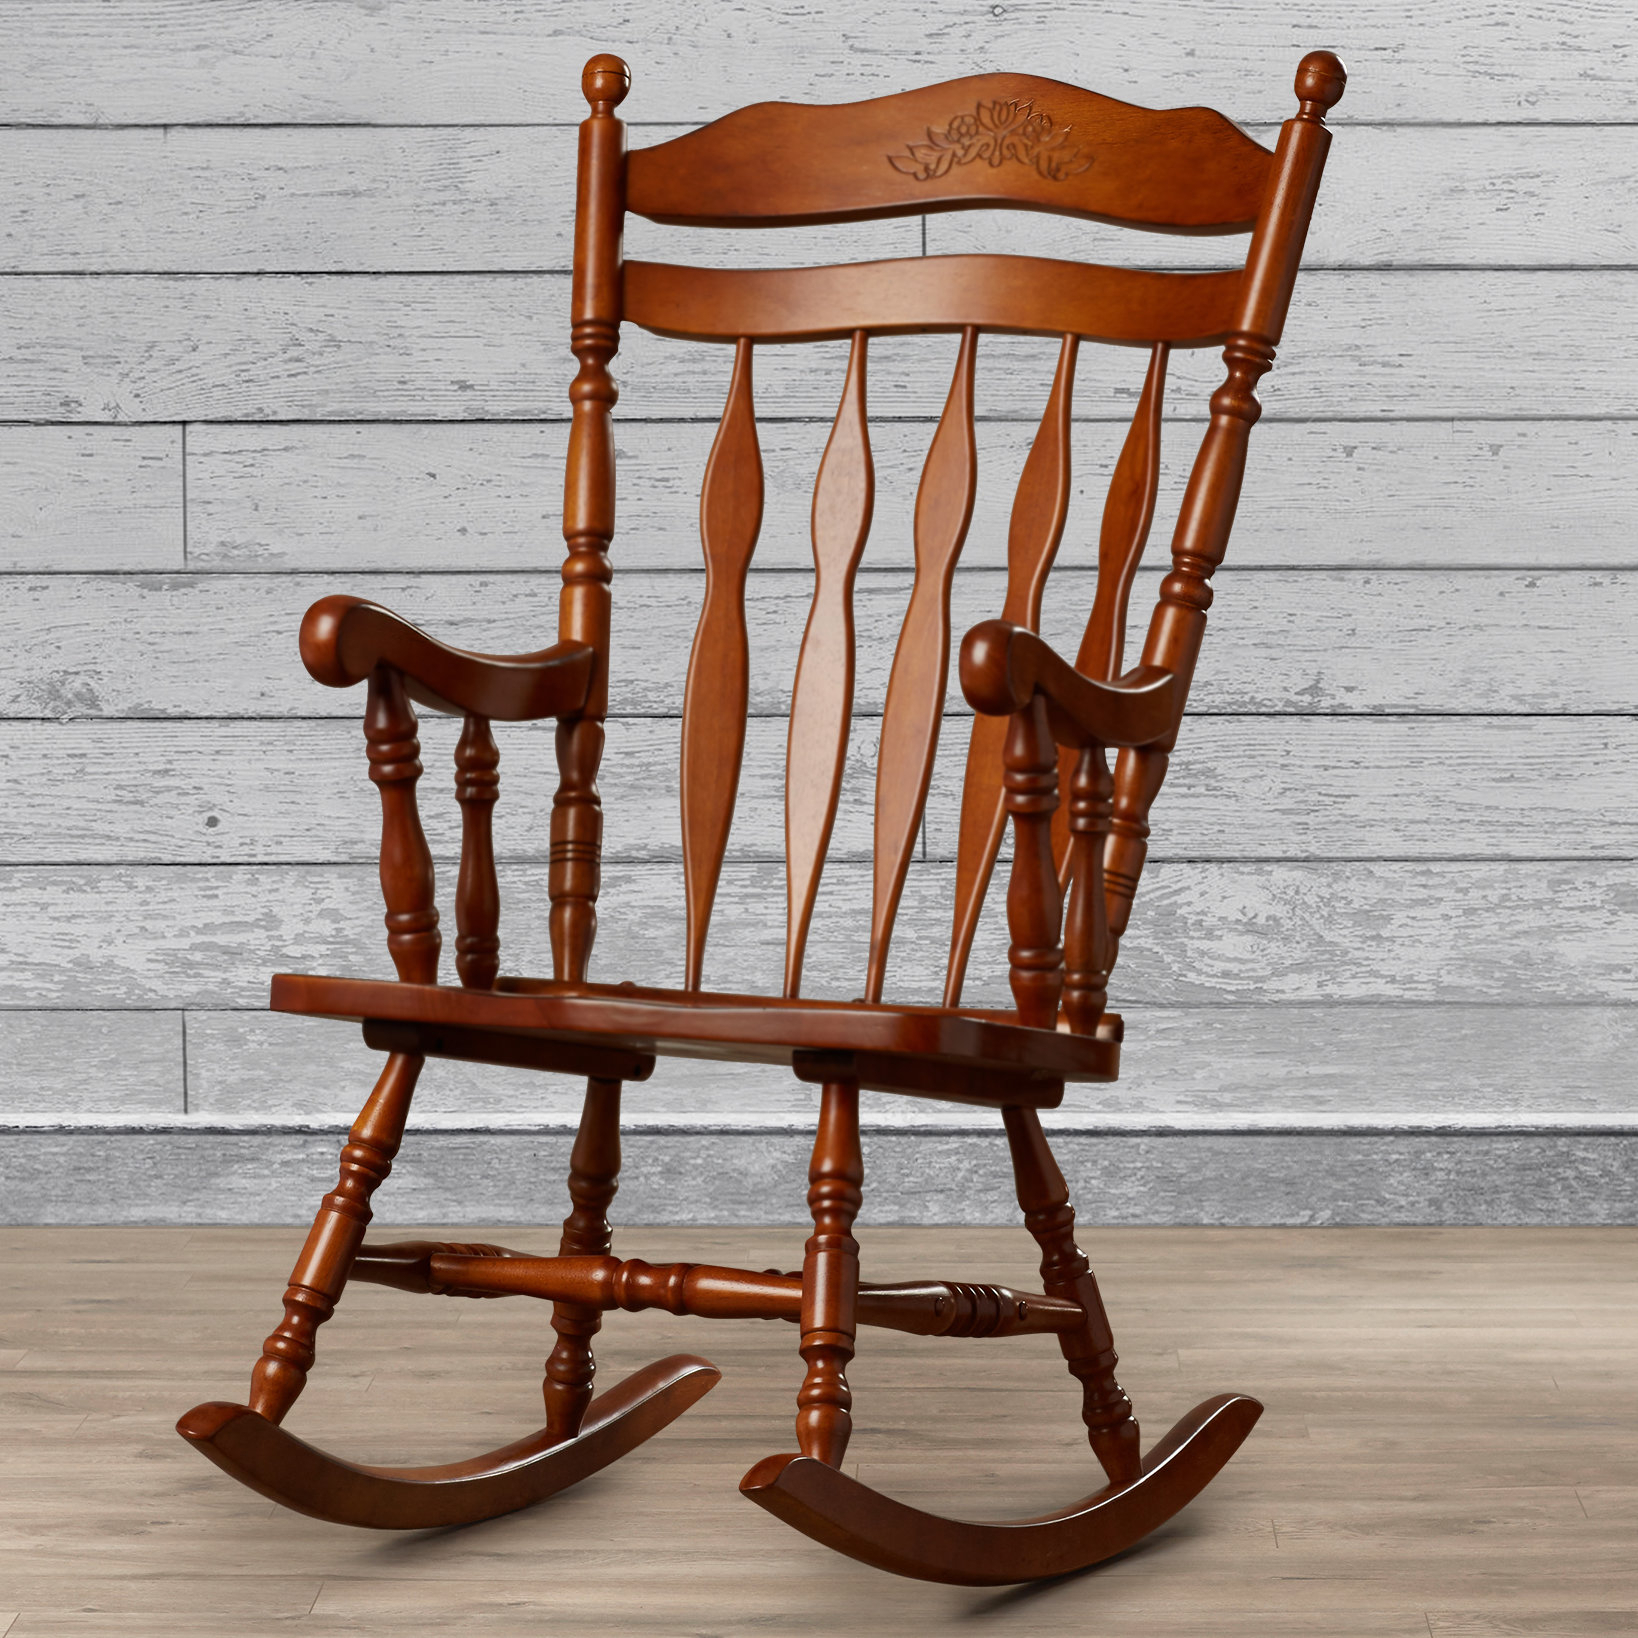 Wood Rocking Chairs You'll Love In 2019 | Wayfair With Wooden Rocking Chairs With Fabric Upholstered Cushions, White (View 20 of 20)